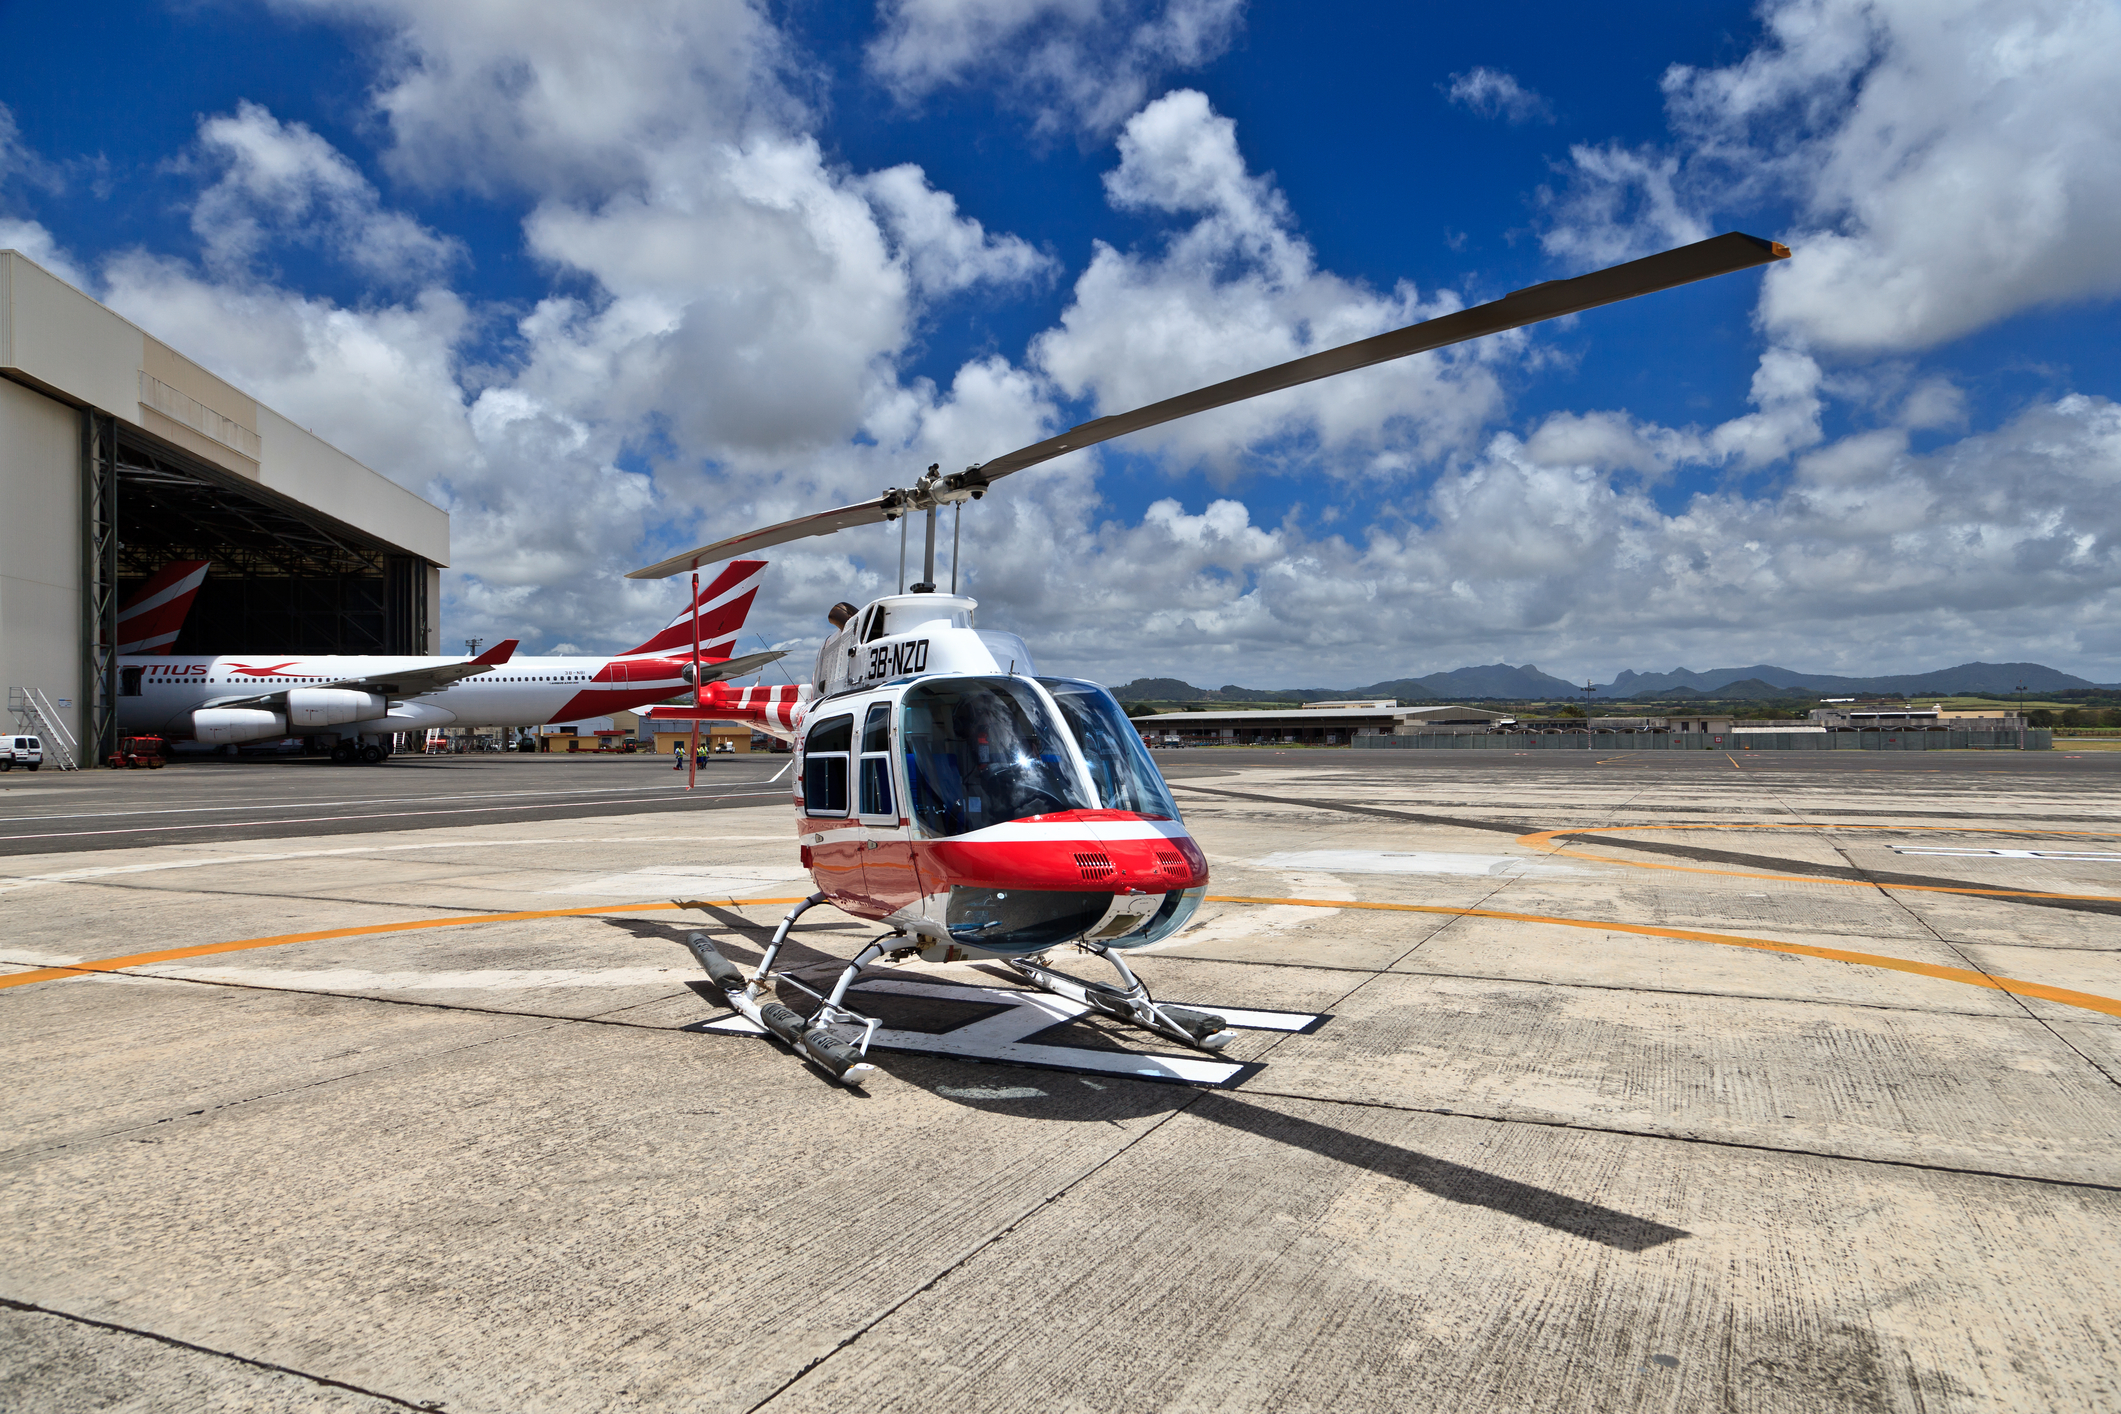 Air Mauritius helicopter preparing to transfer tourists from Airport to hotel